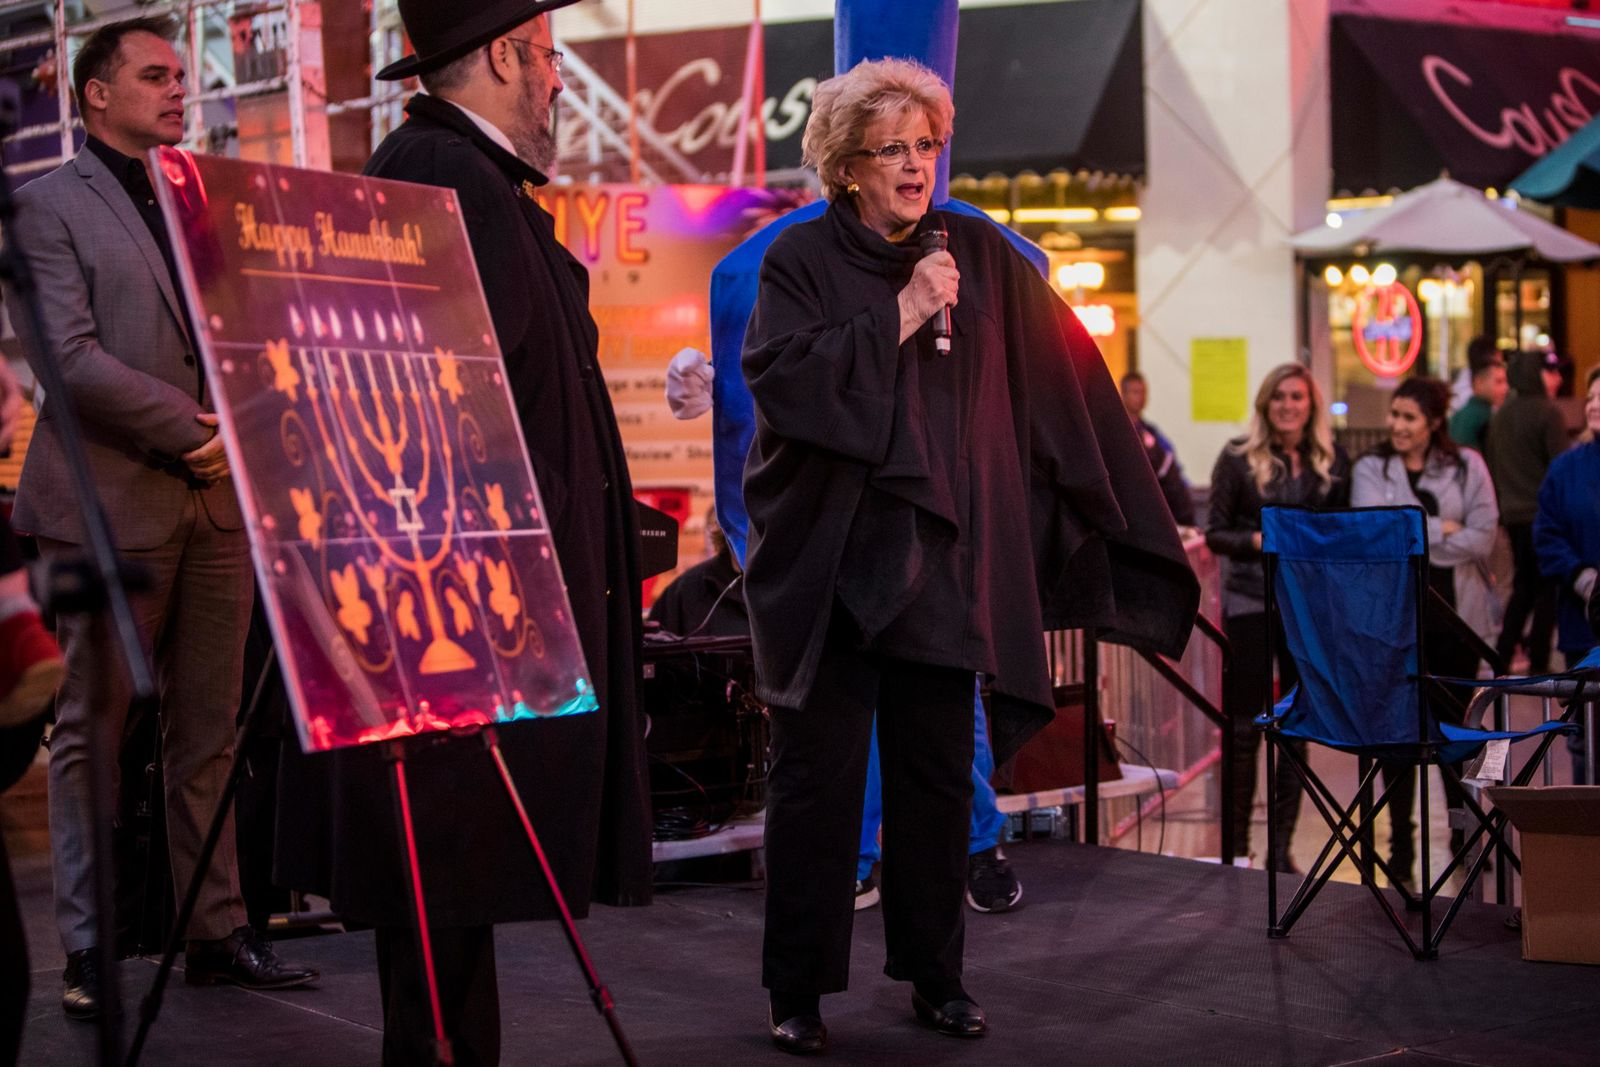 Las Vegas Mayor Carolyn Goodman speaks before the lighting of the Grand Menorah in downtown Las Vegas on Sunday, Dec. 2. The 20-foot Grand Menorah will remain on display throughout the Hanukkah season. CREDIT: Joe Buglewicz/Las Vegas News Bureau